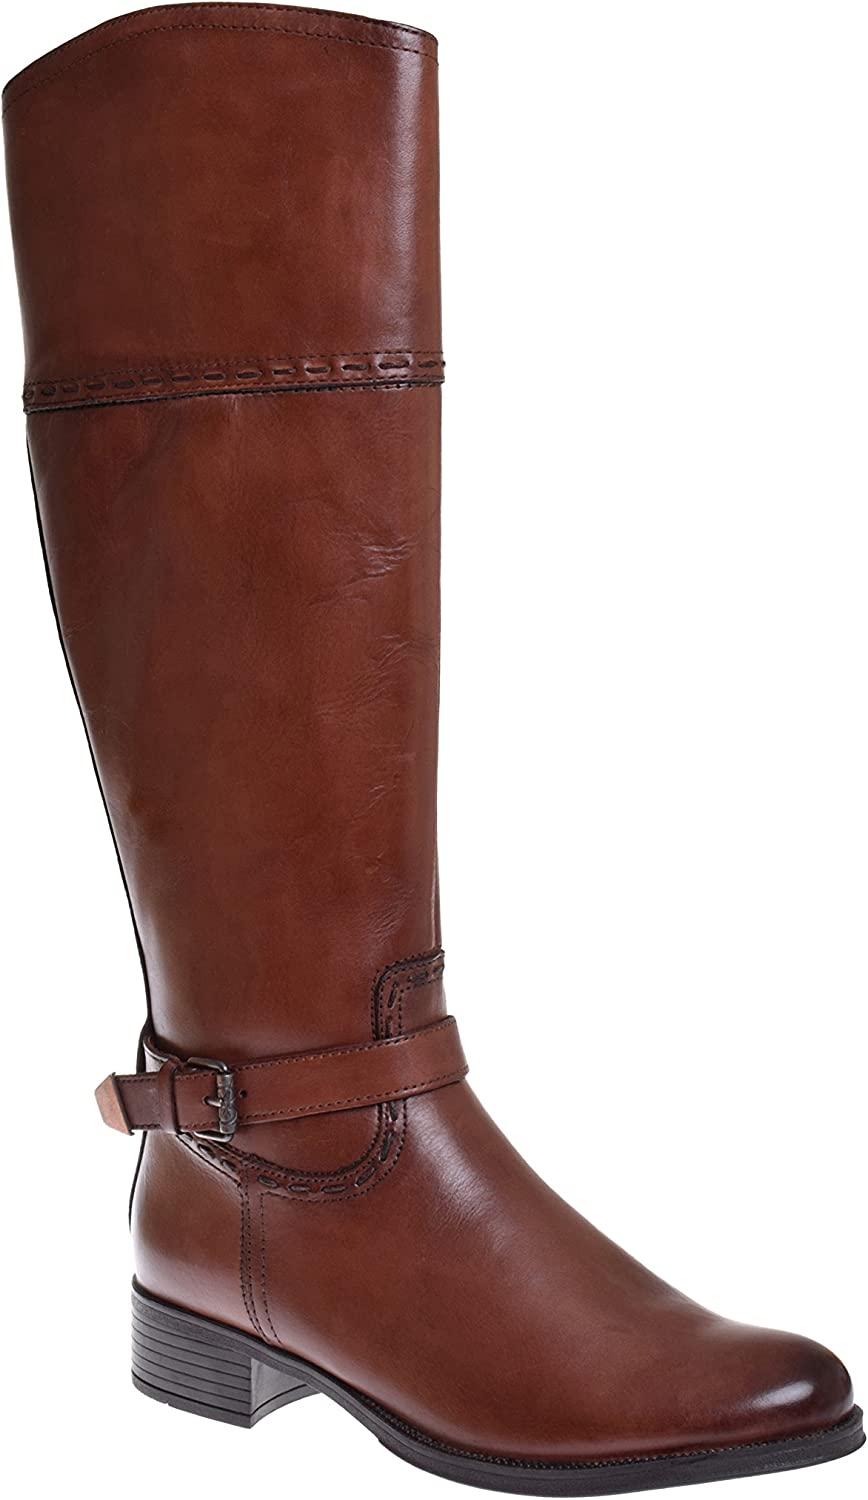 Bussola Singa Knee High Boot - Nevada Russett